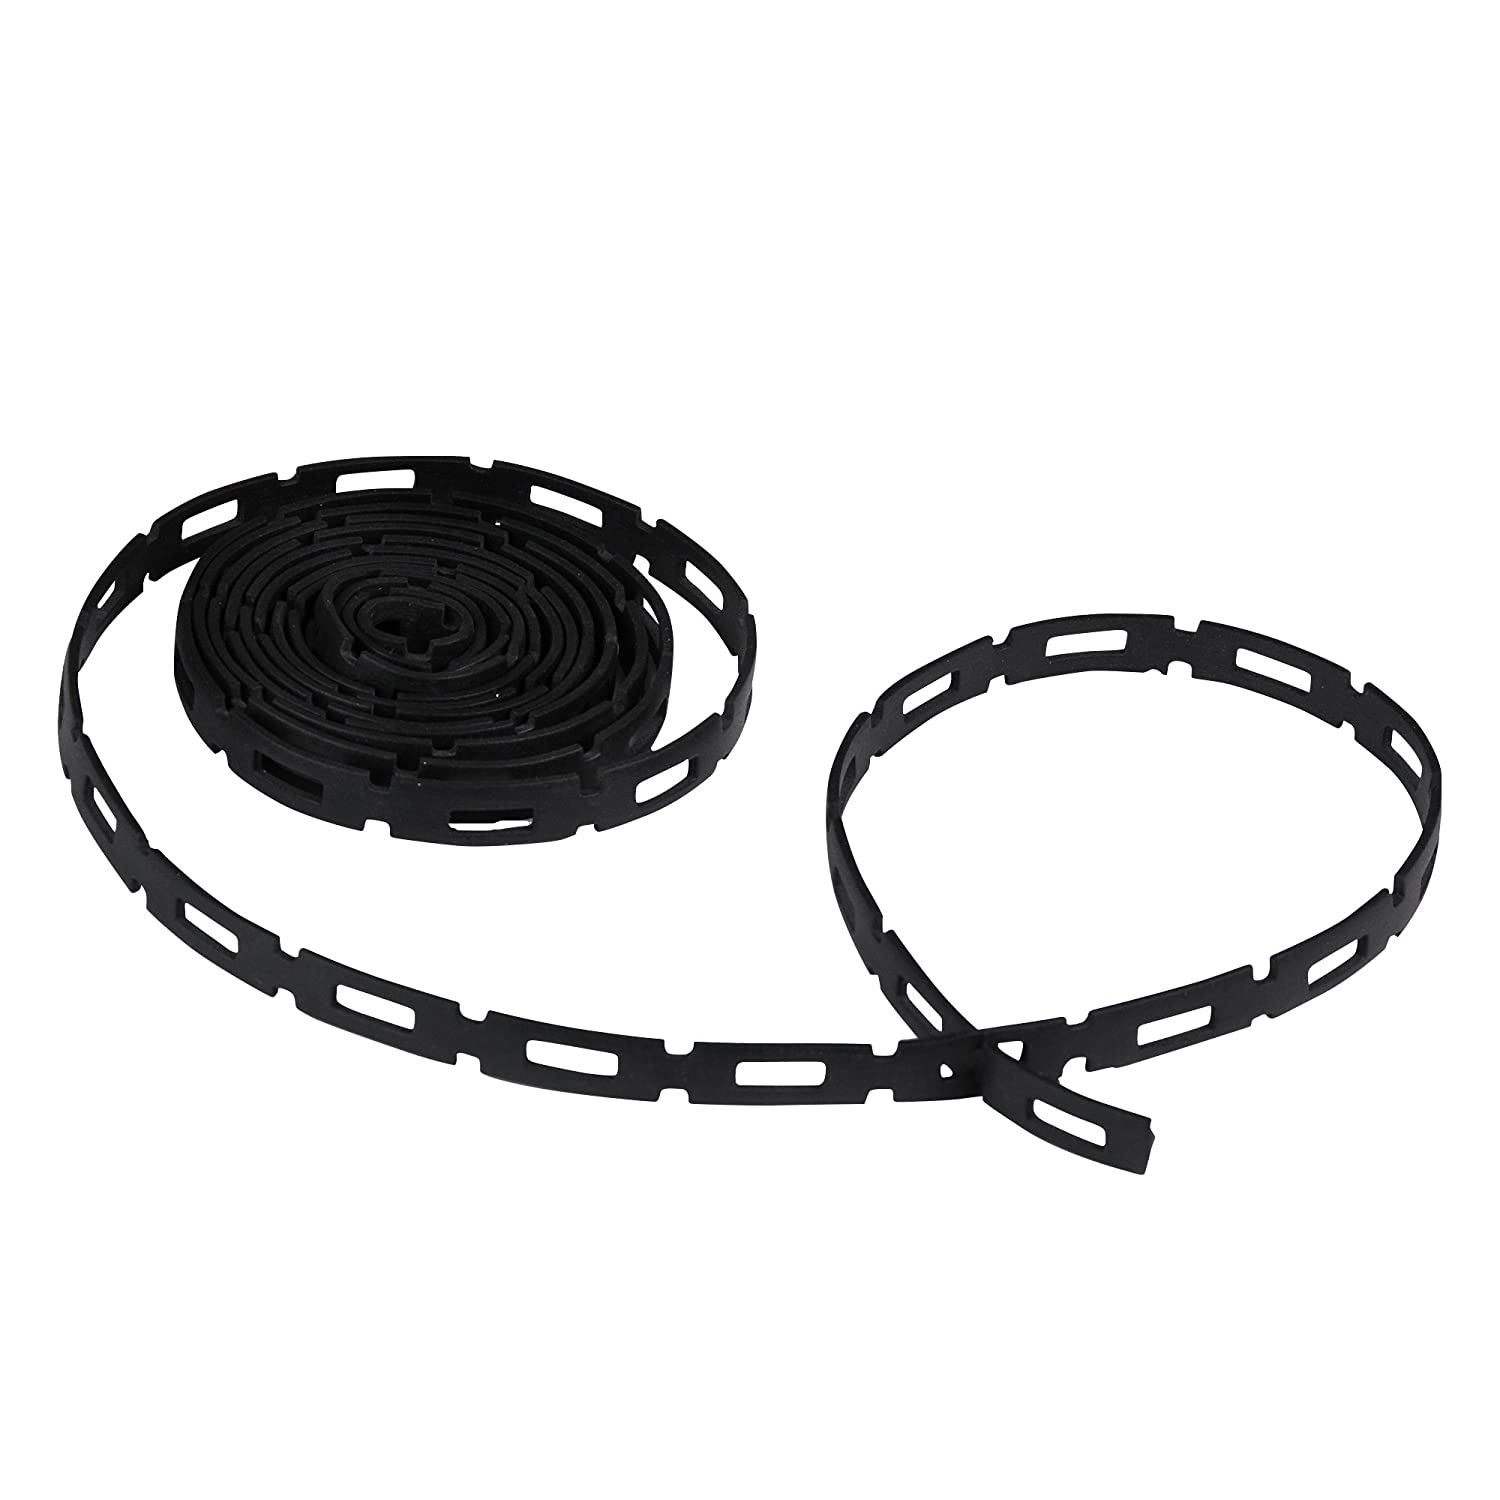 Dimex EasyFlex Plastic Locking Tree Plant and Cable Ties 1 2 Inch Wide 100 Foot Coil SoftFlex 1150 2